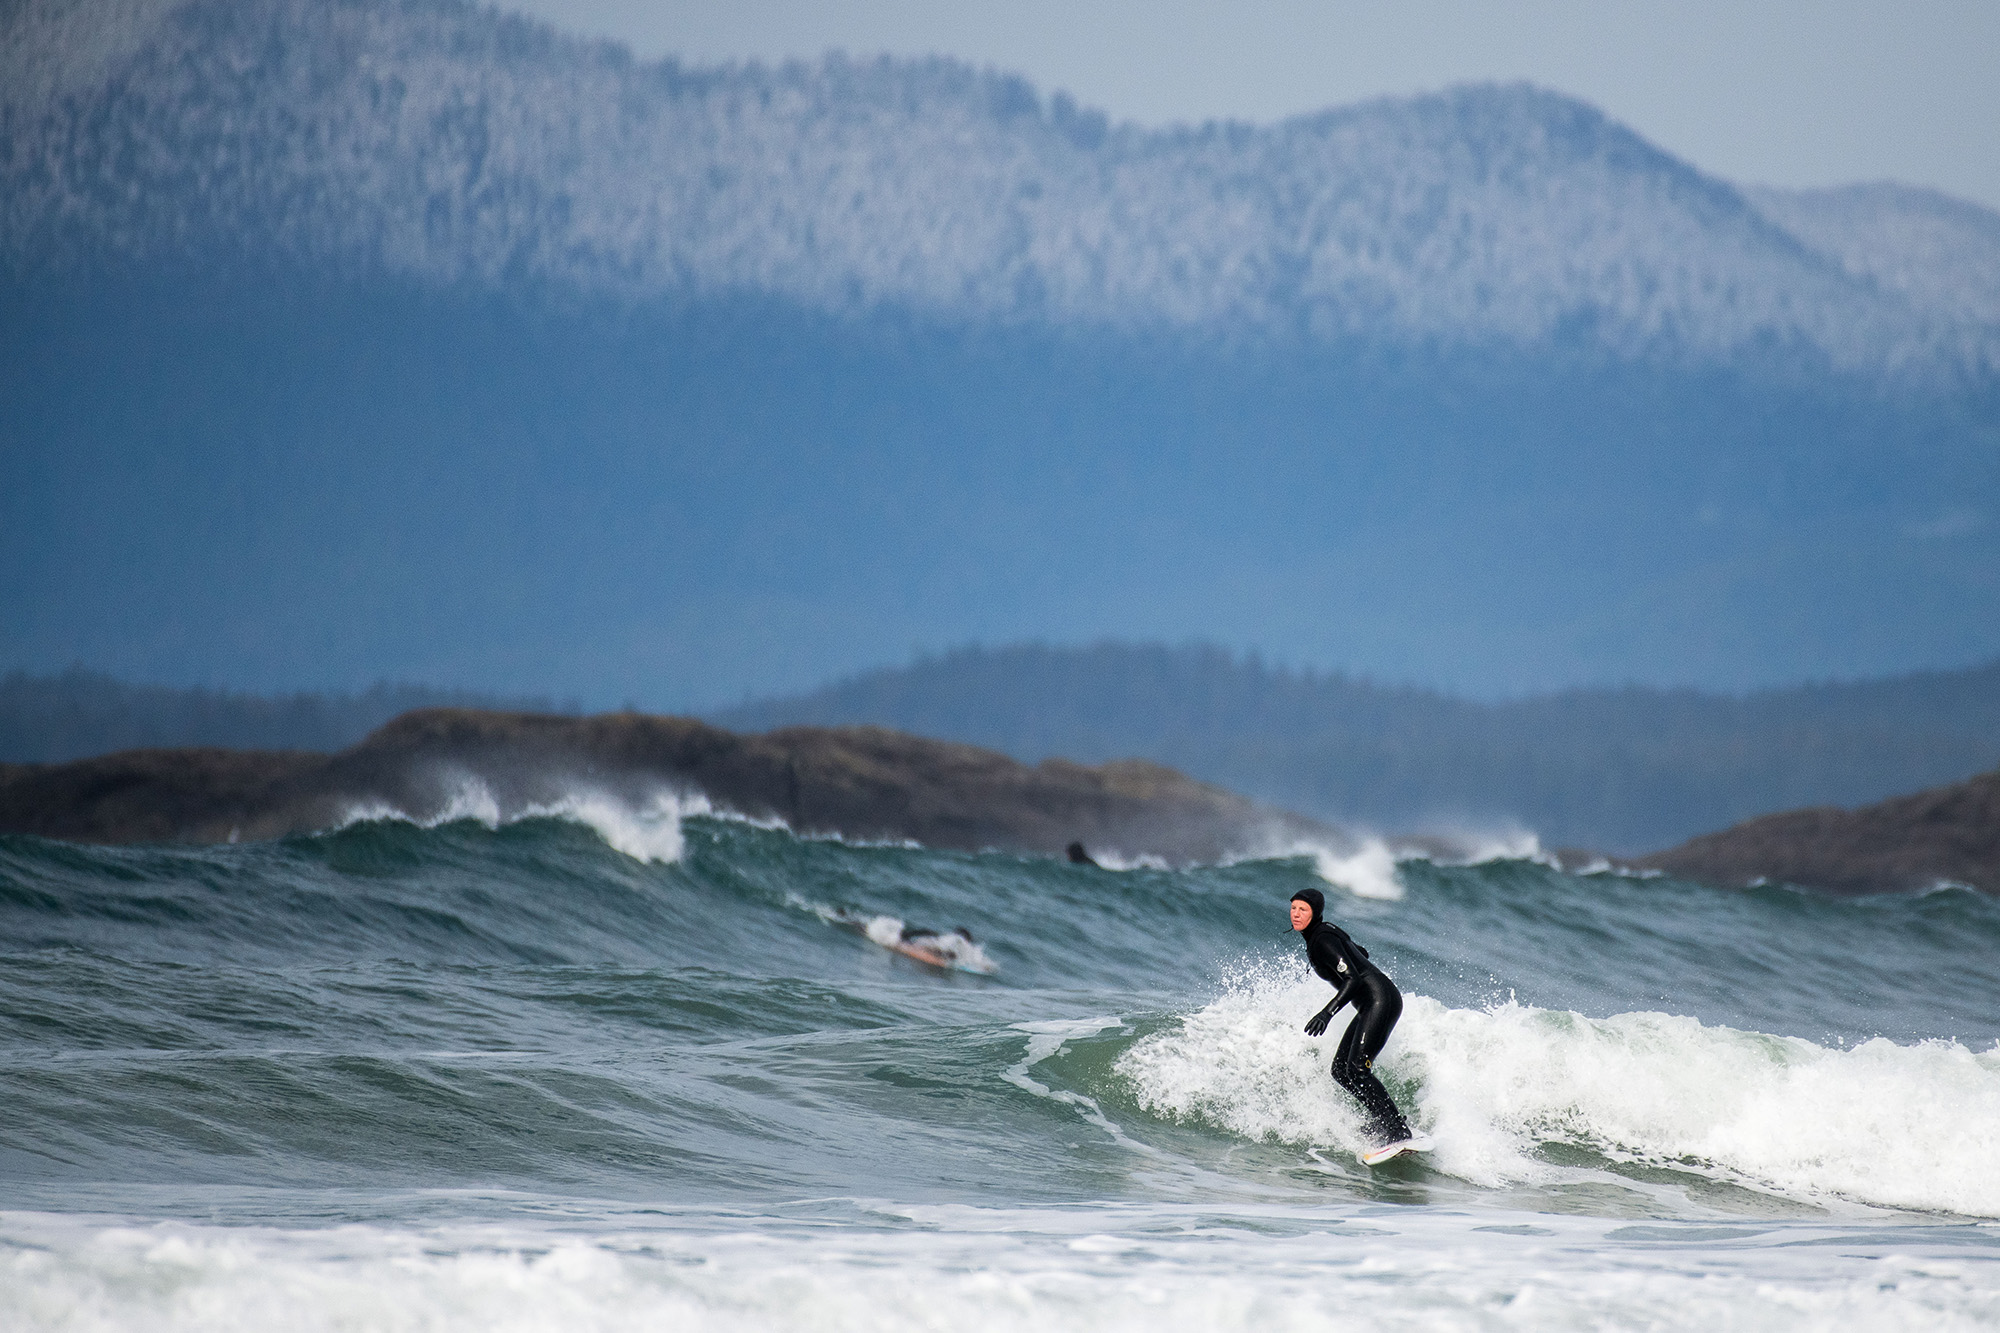 Vancouver Island's Olympic athletes, in photos